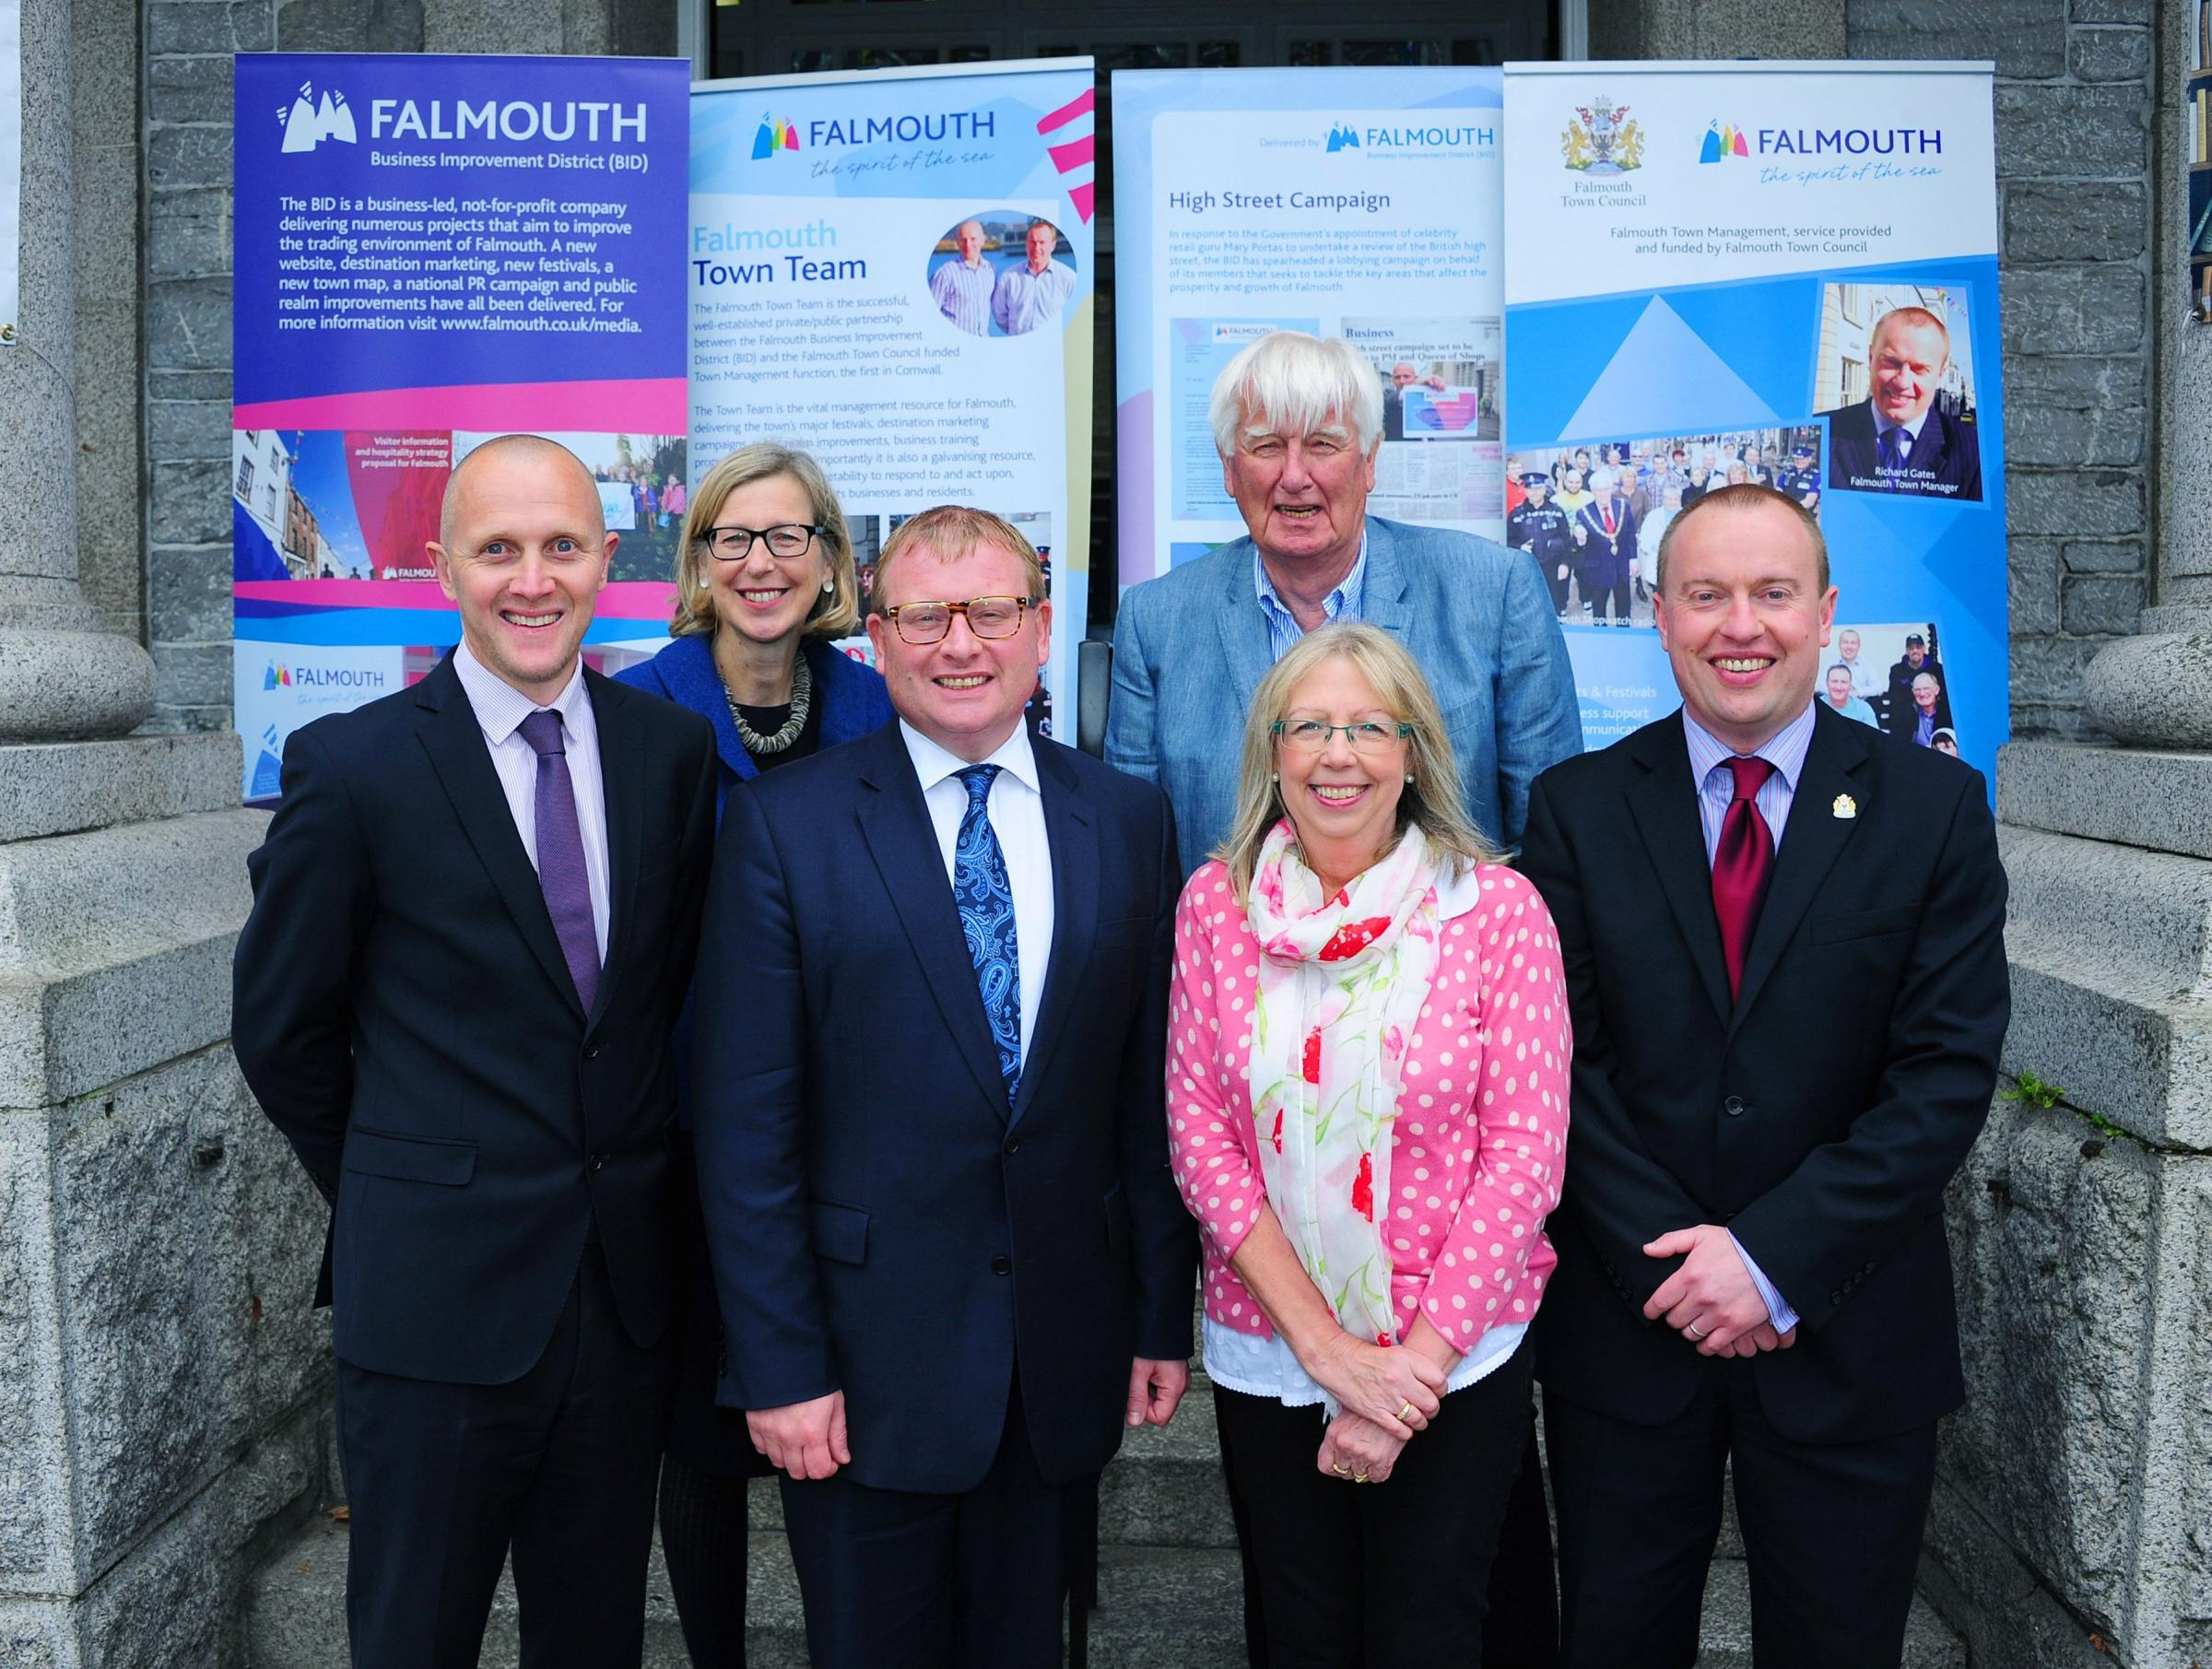 Minister for High Streets visits Falmouth, but doesn't visit High Street